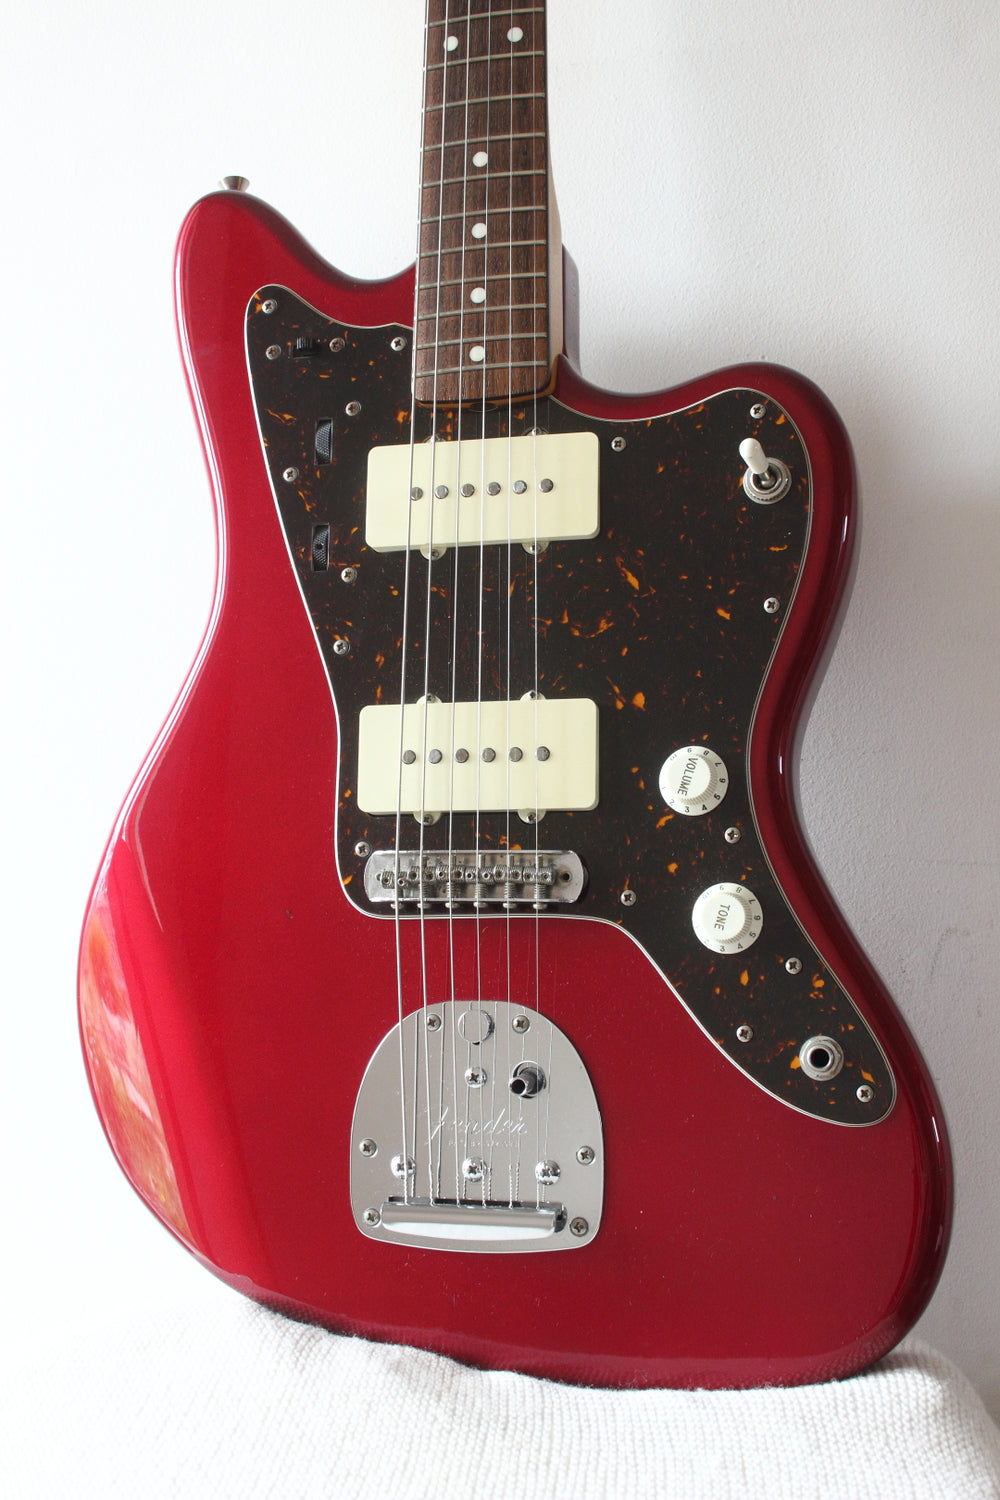 Fender Japan Jazzmaster JM66 Modded Candy Apple Red 2010/11